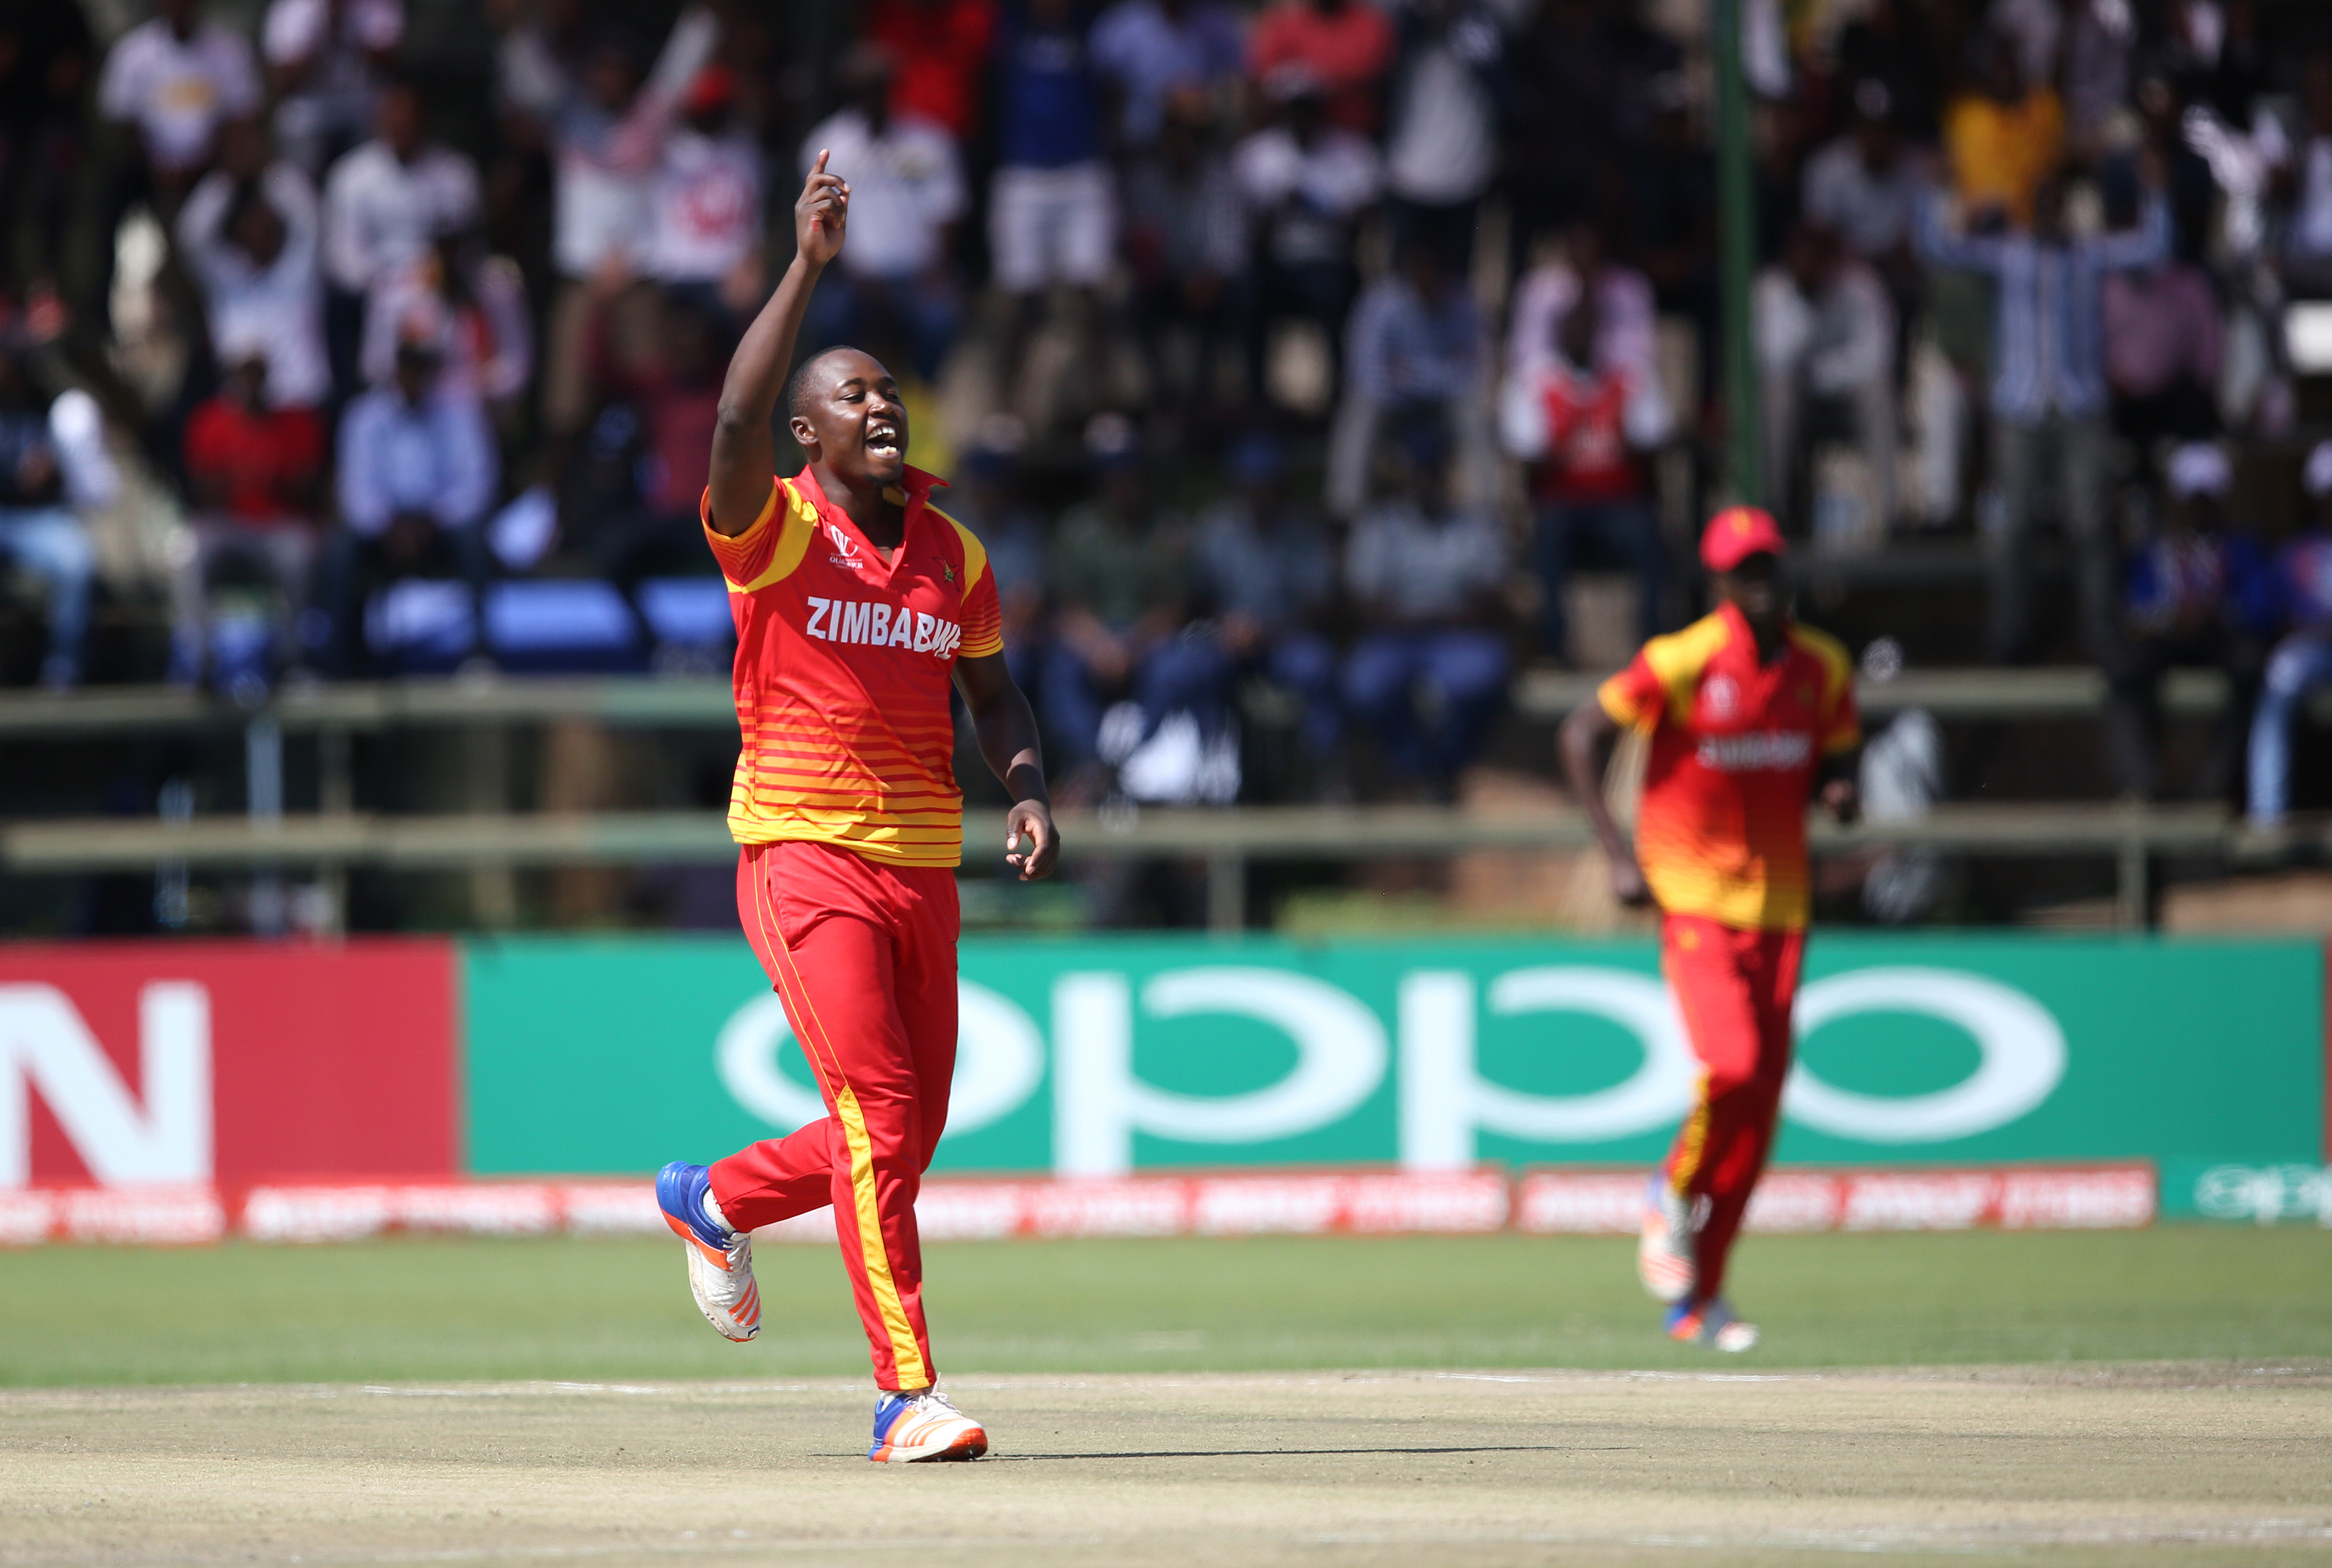 Chatara leads the way as Zimbabwe kick off series with seven-wicket win - International Cricket Council